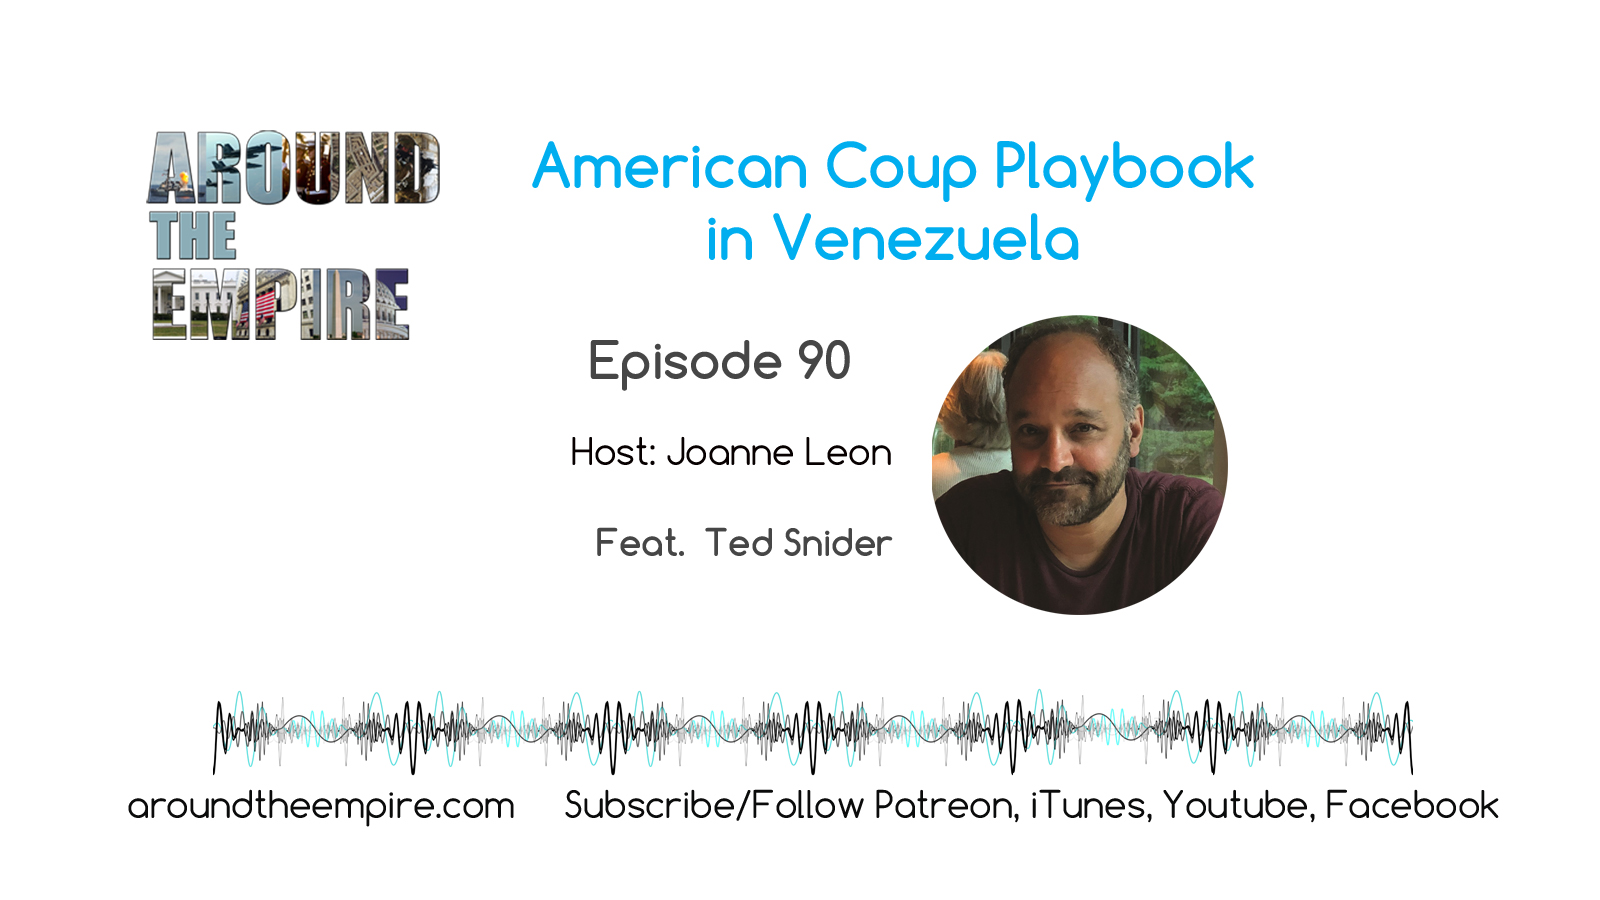 Ep90 American Coup Playbook in Venezuela feat Ted Snider